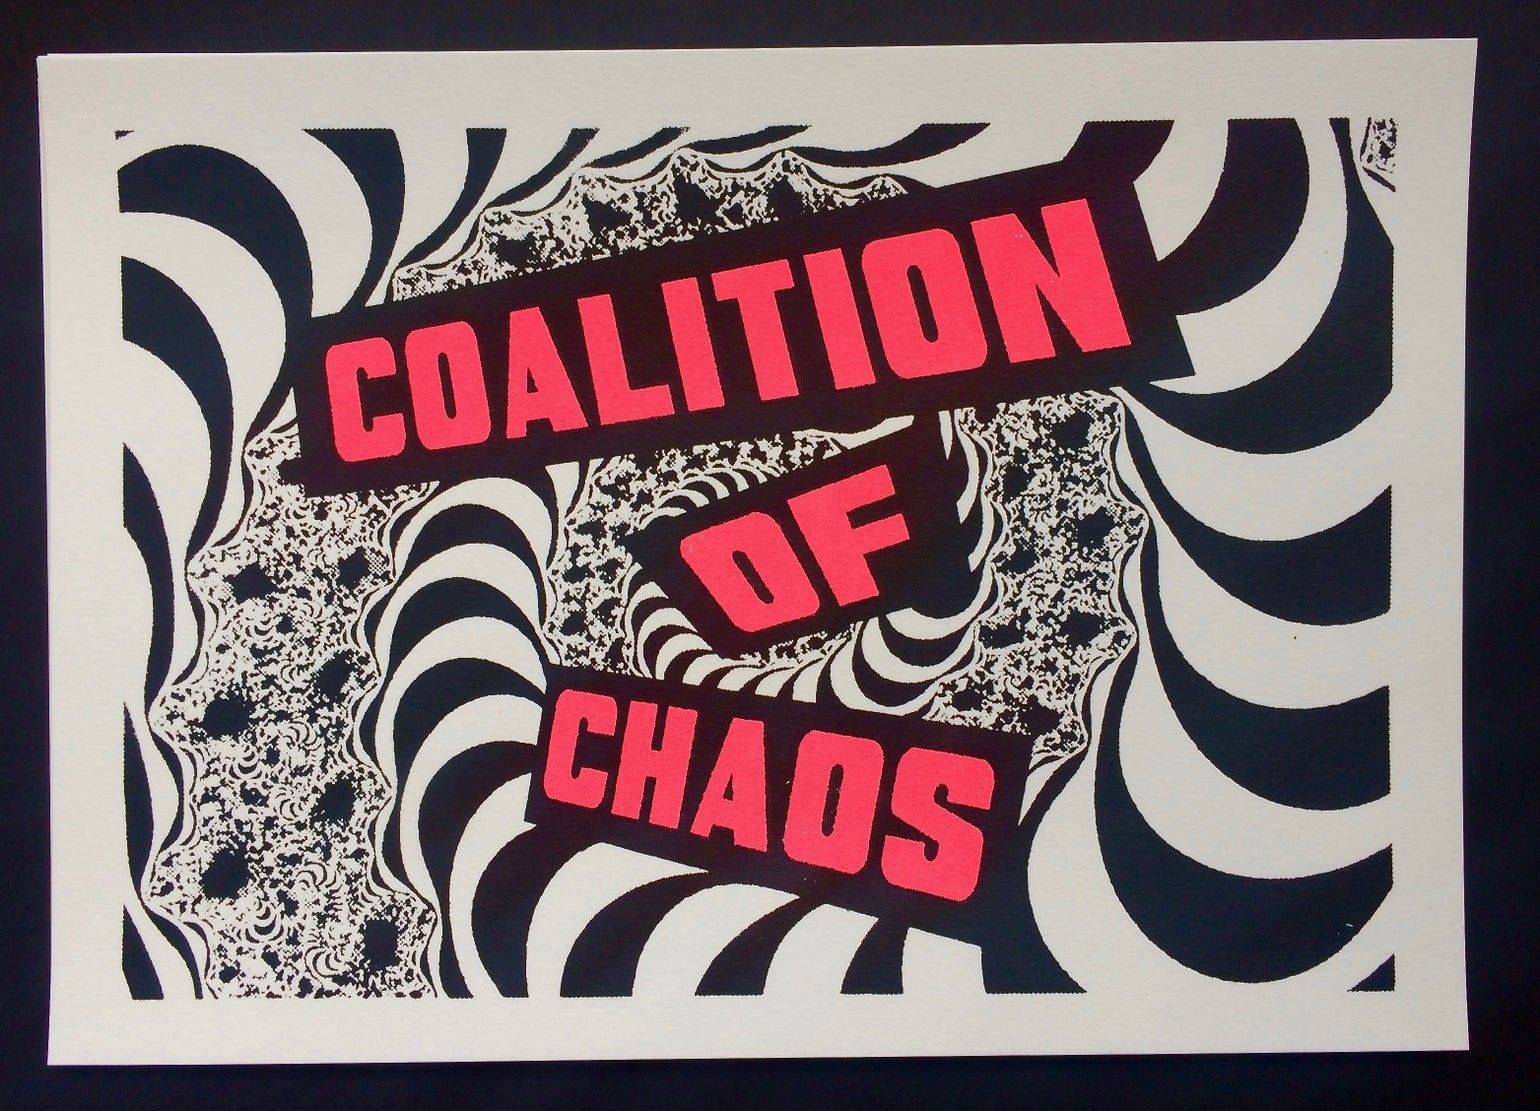 Image of Coalition of Chaos